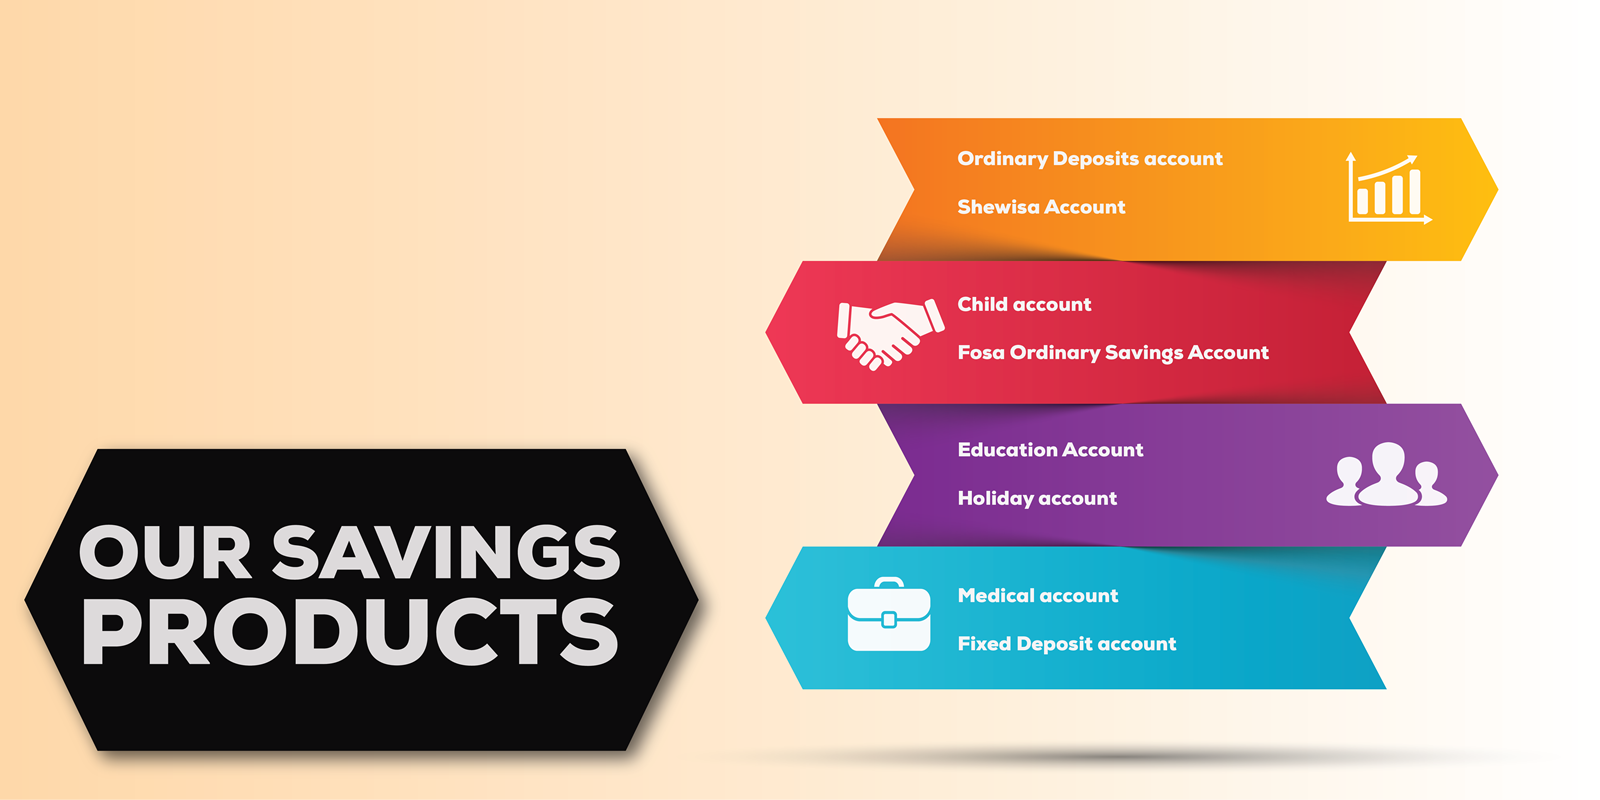 Sheria Sacco Savings Products